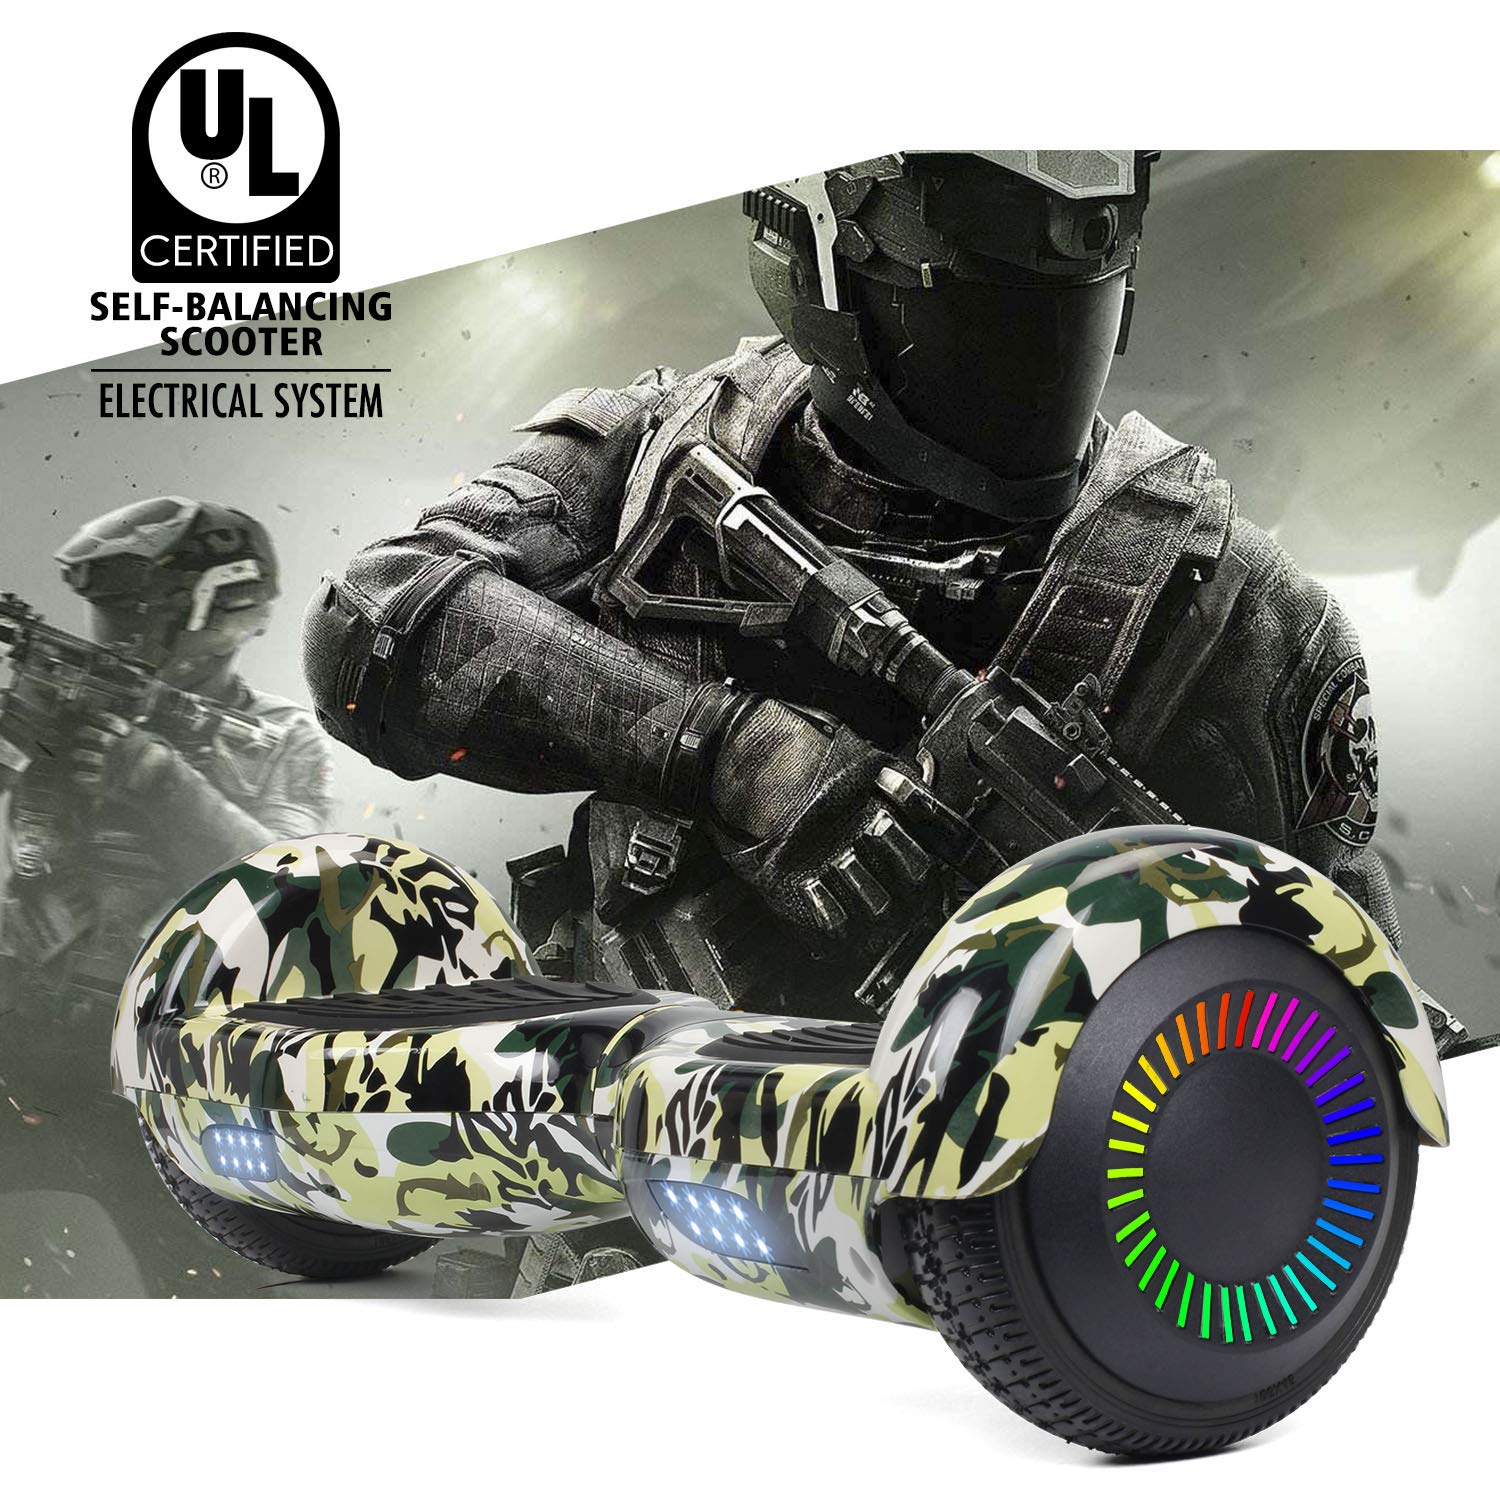 SISIGAD Hoverboard Self Balancing Scooter 6.5'' Two-Wheel Self Balancing Hoverboard with LED Lights Electric Scooter for Adult Kids Gift UL 2272 Certified Fun Edition - Woodland Camo by SISIGAD (Image #7)